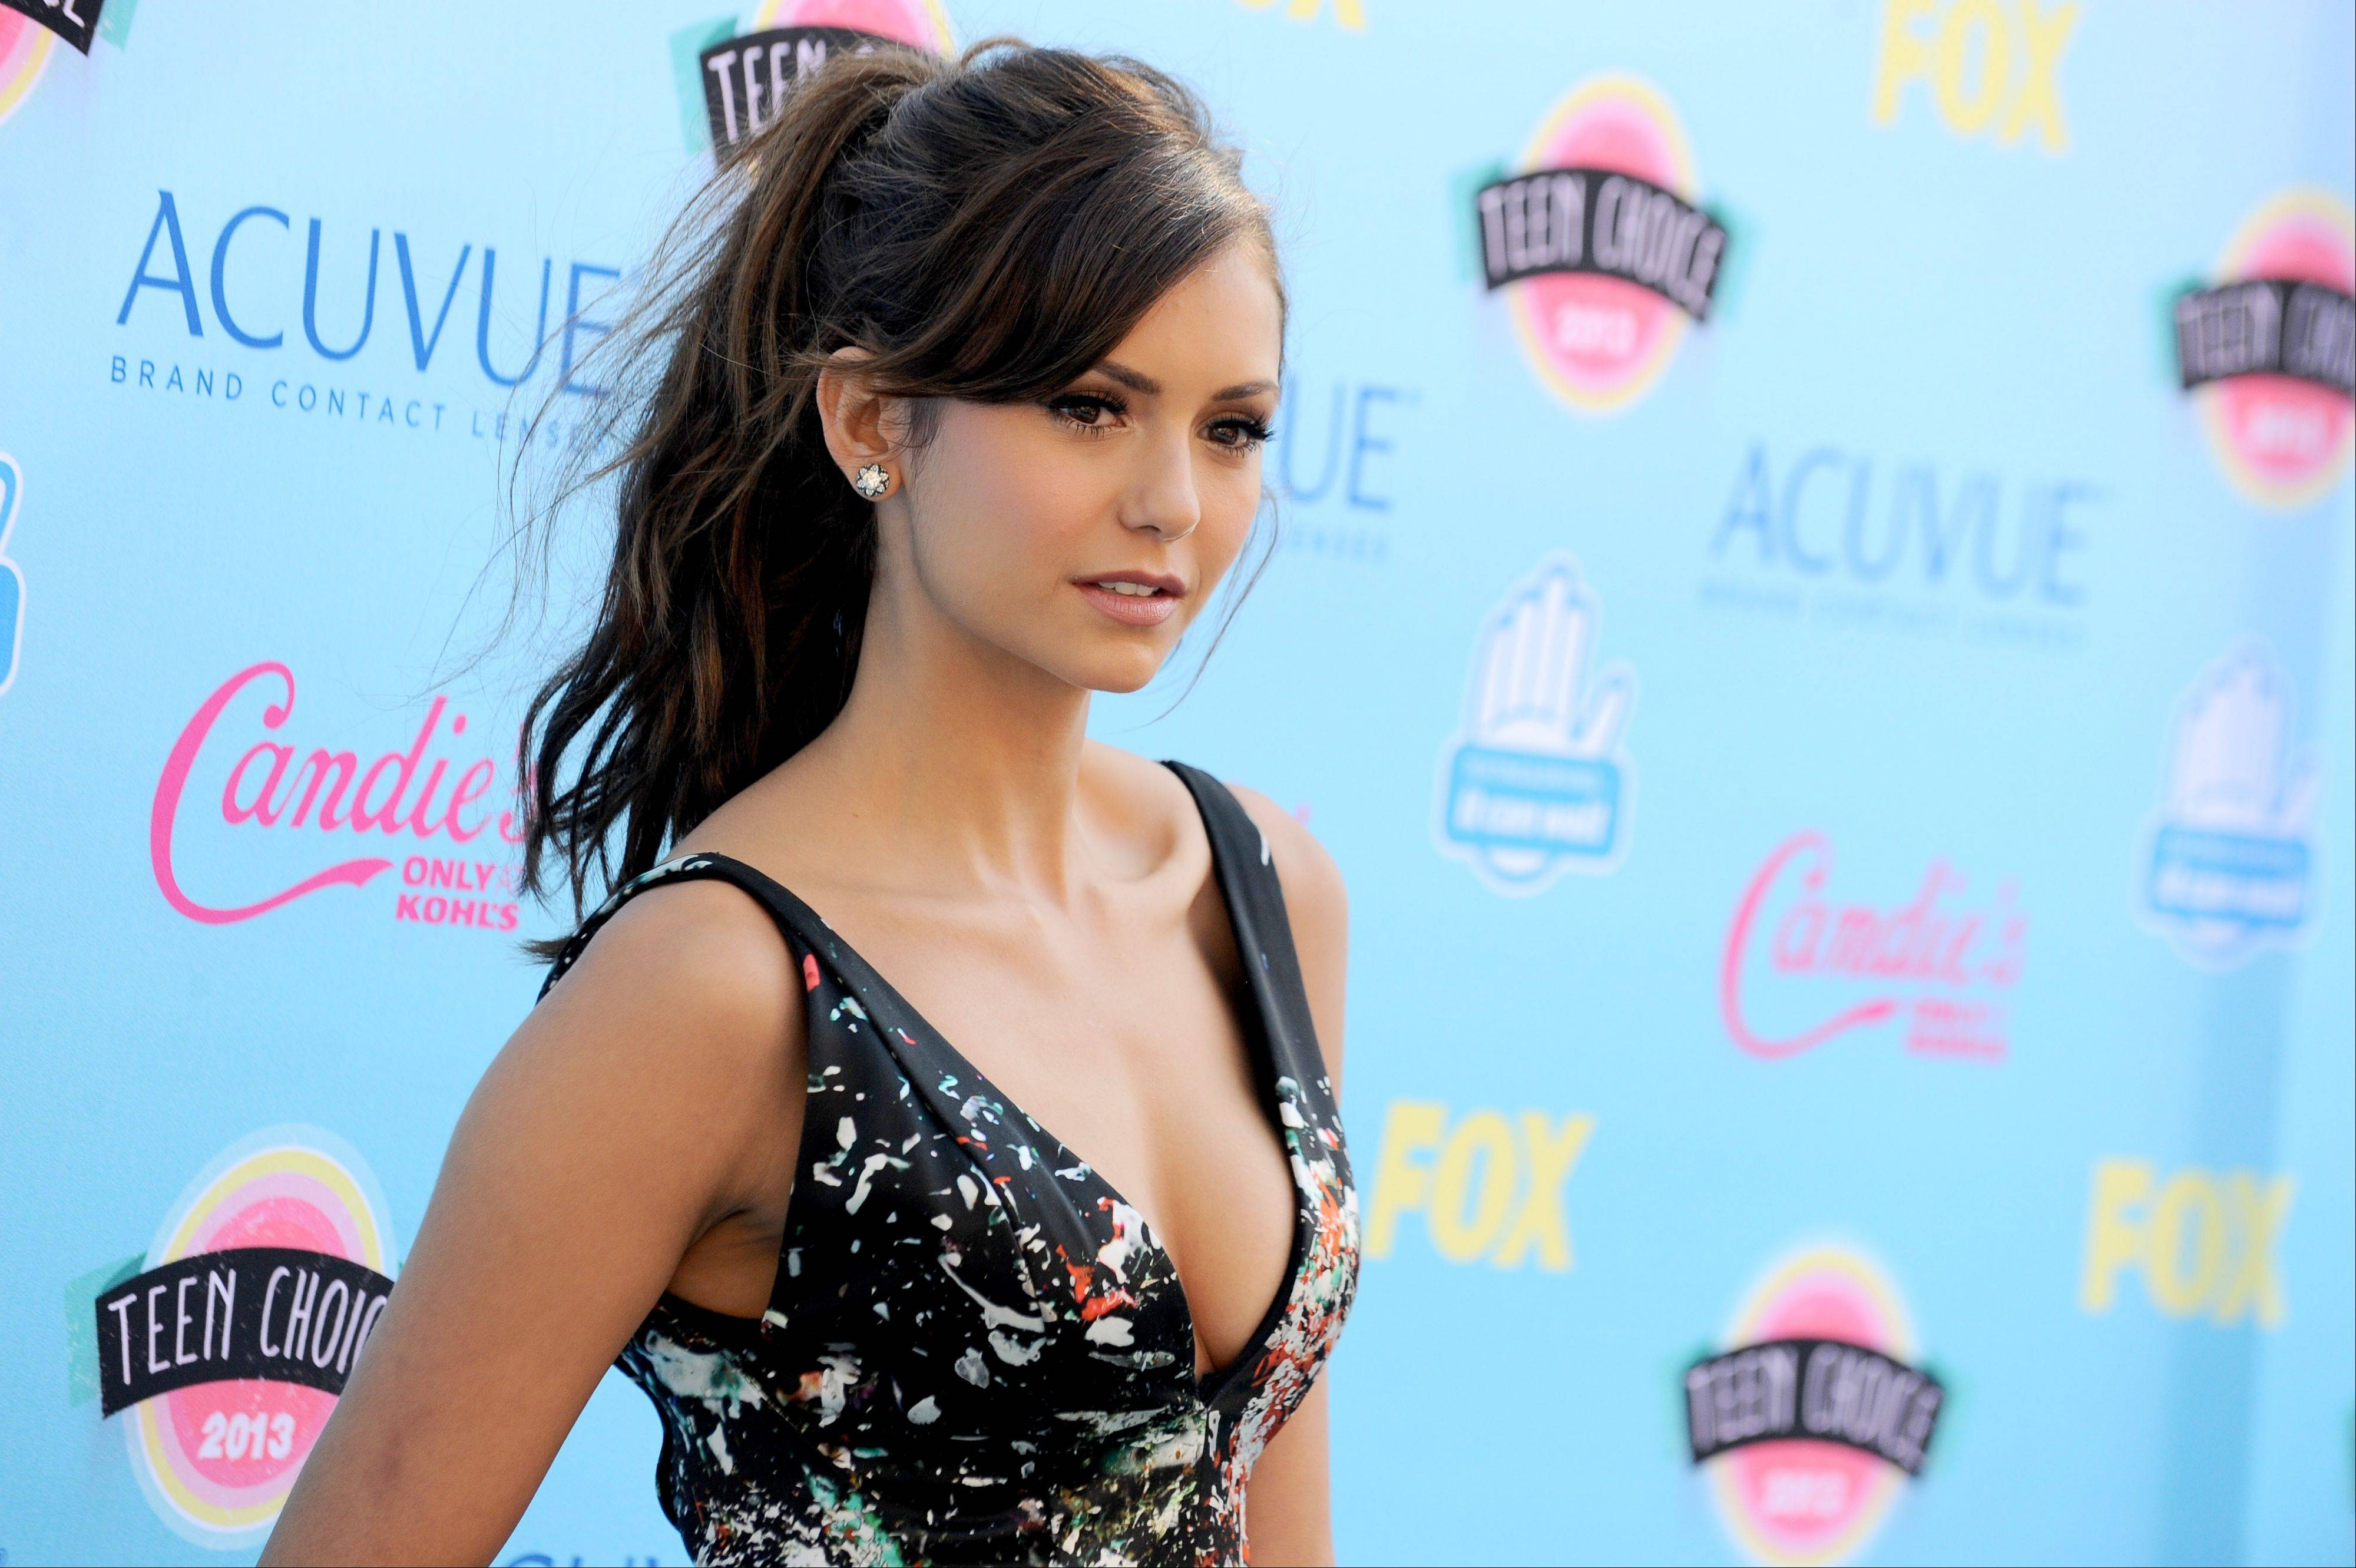 """The Vampire Diaries"" star Nina Dobrev arrives at the Teen Choice Awards at the Gibson Amphitheater on Sunday in Los Angeles."